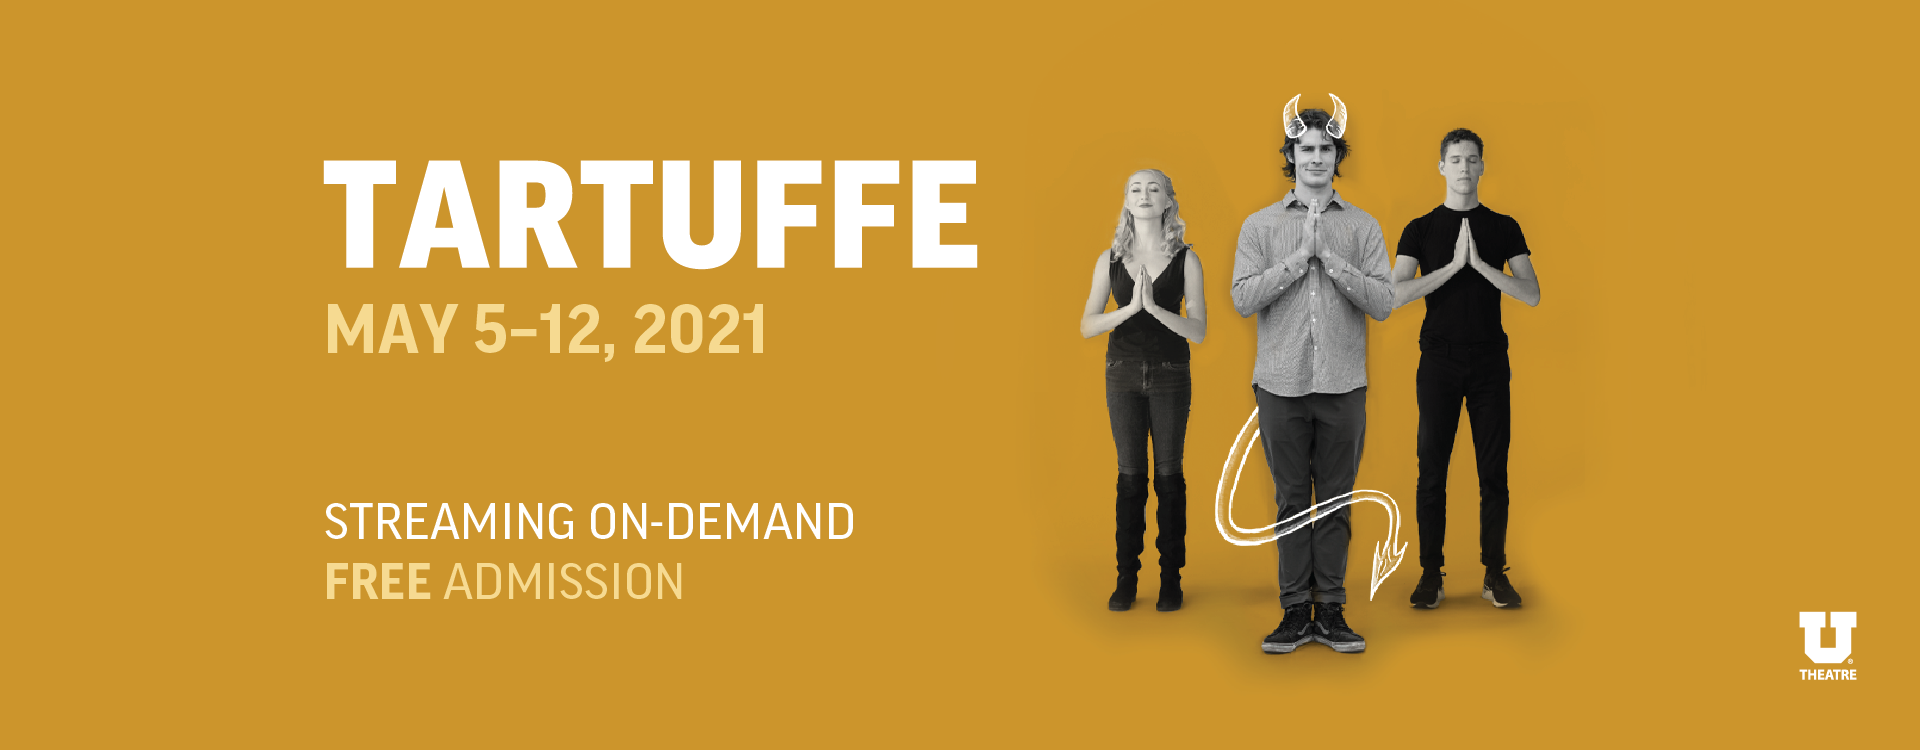 Tartuffe by U of U Theatre